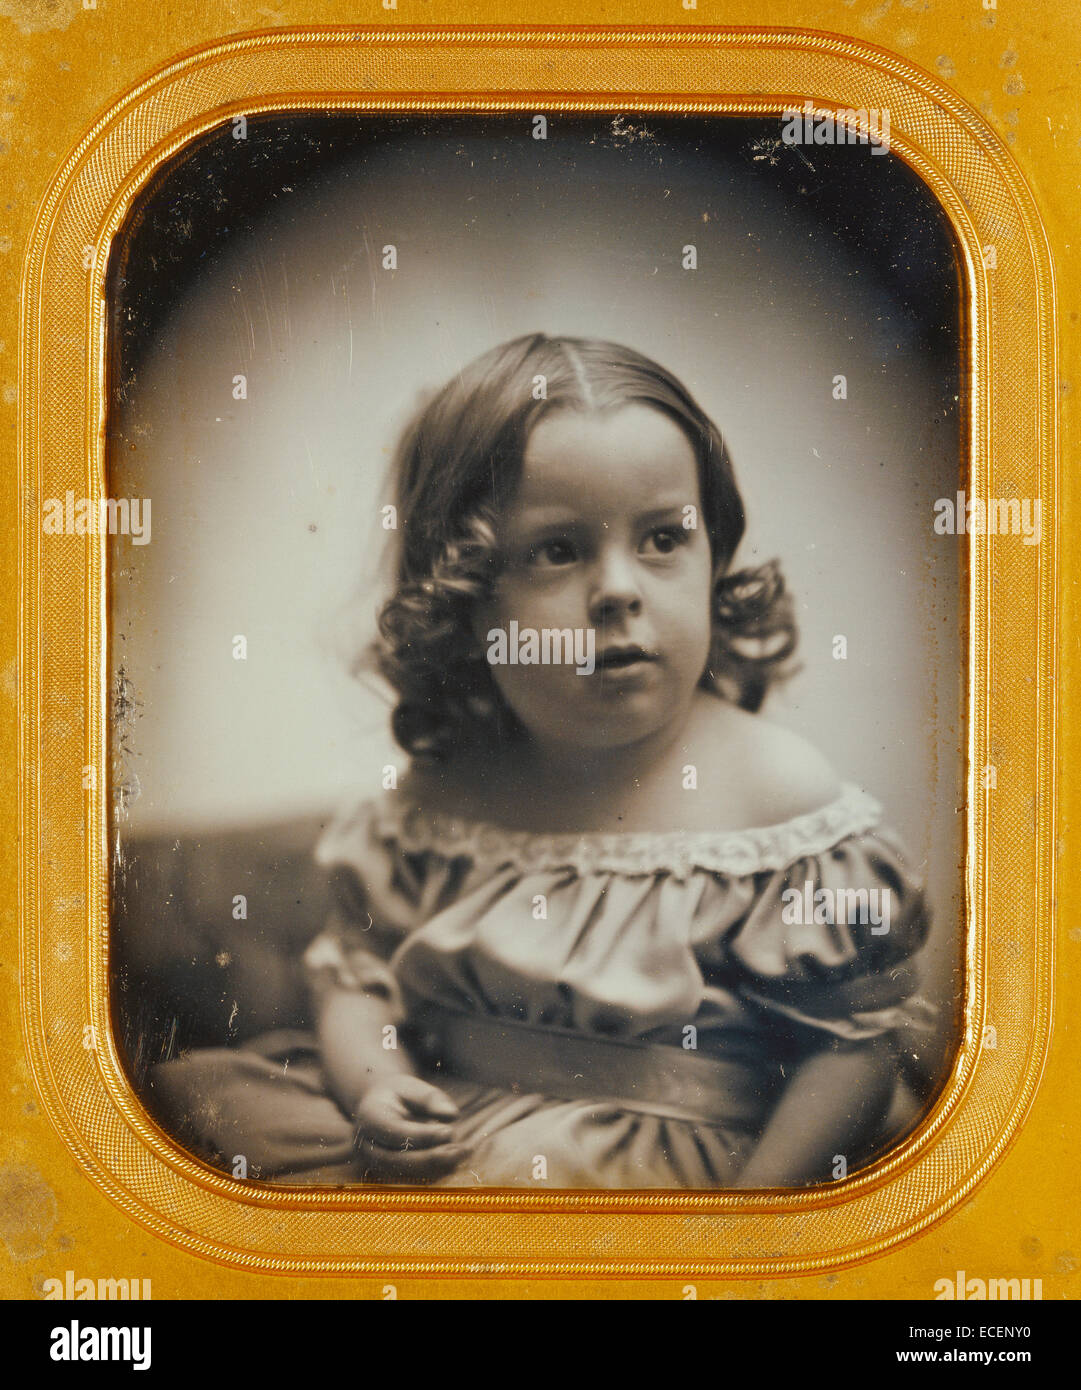 Portrait of a Young Girl; Southworth & Hawes, American, active 1844 - 1862; about 1852; Daguerreotype; 1/2 plate, - Stock Image